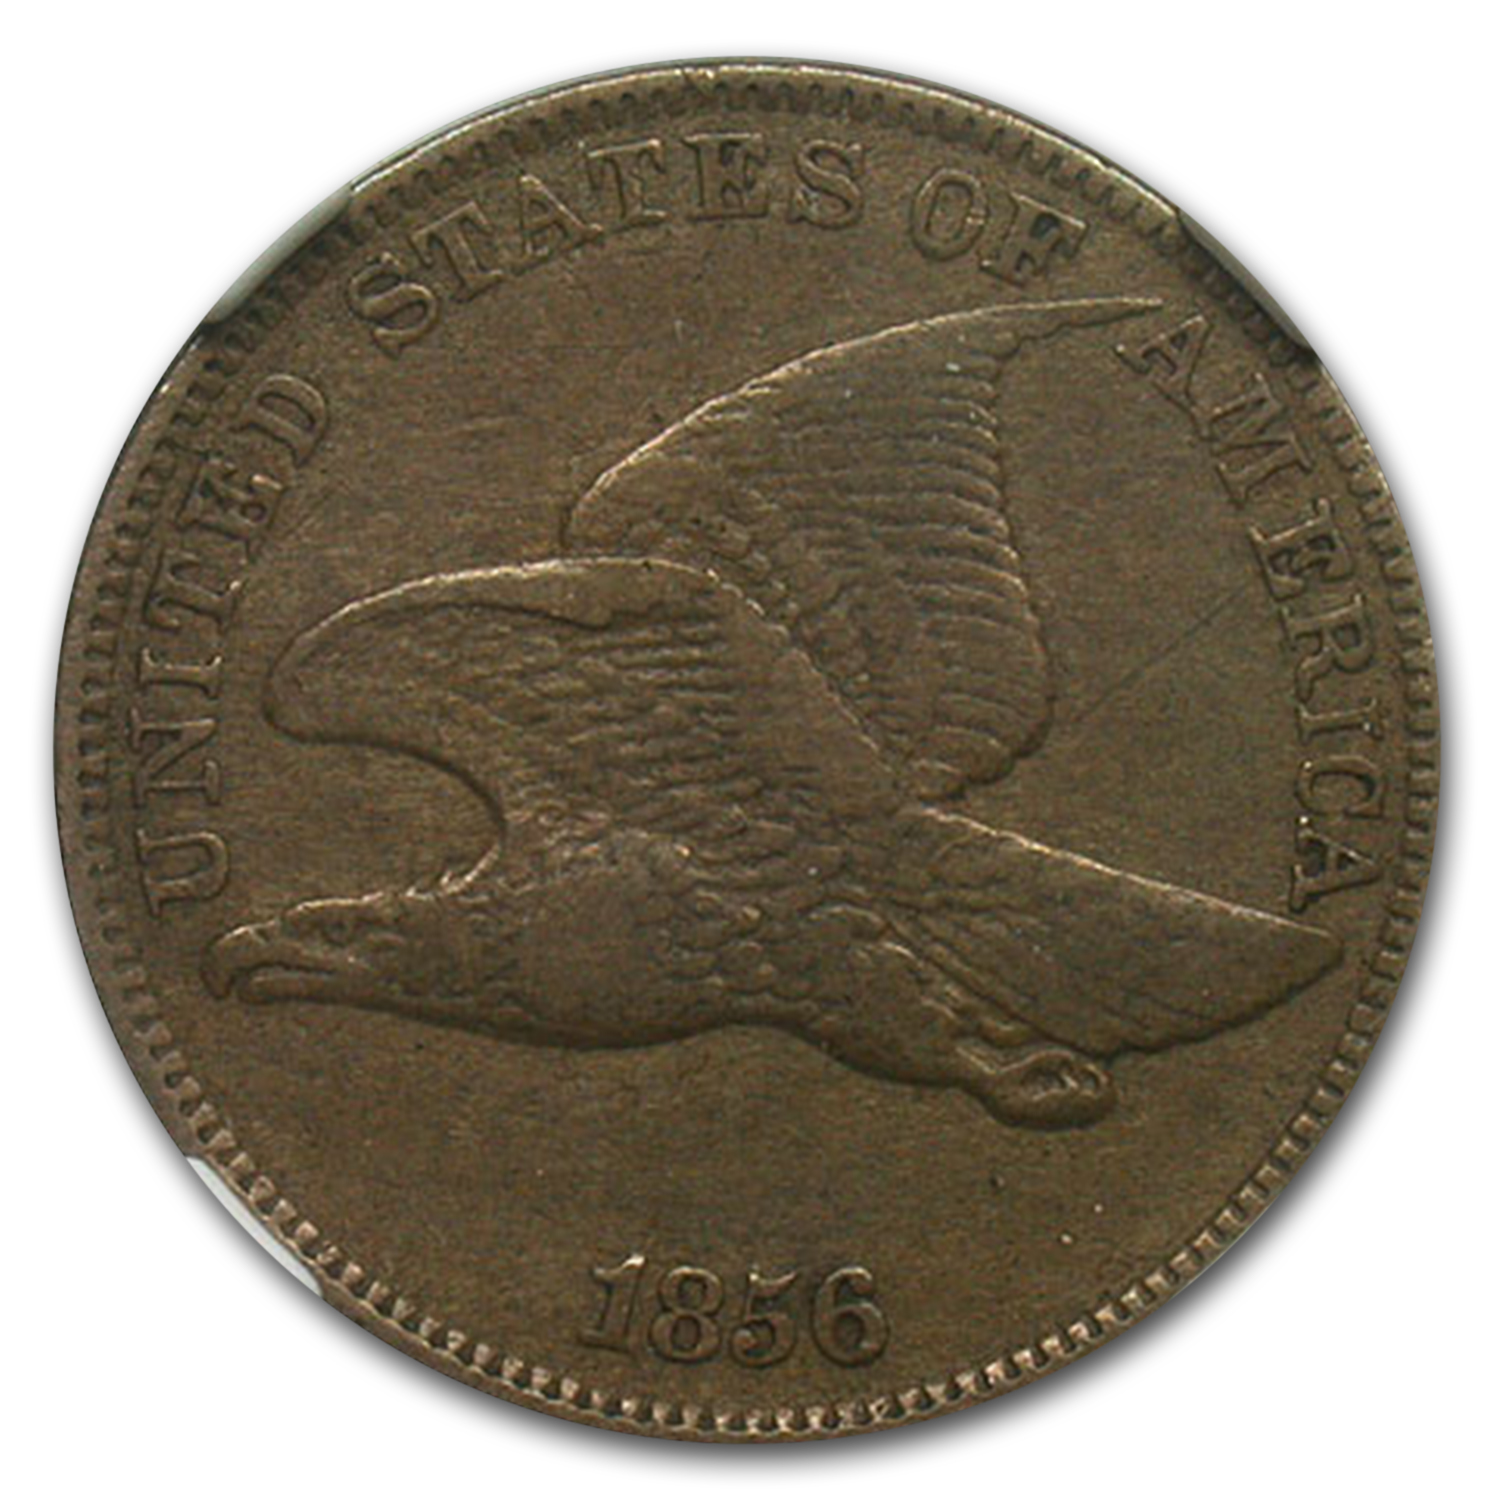 1856 Flying Eagle Cent PF-40 NGC (Reverse Struck Thru Mint Error)